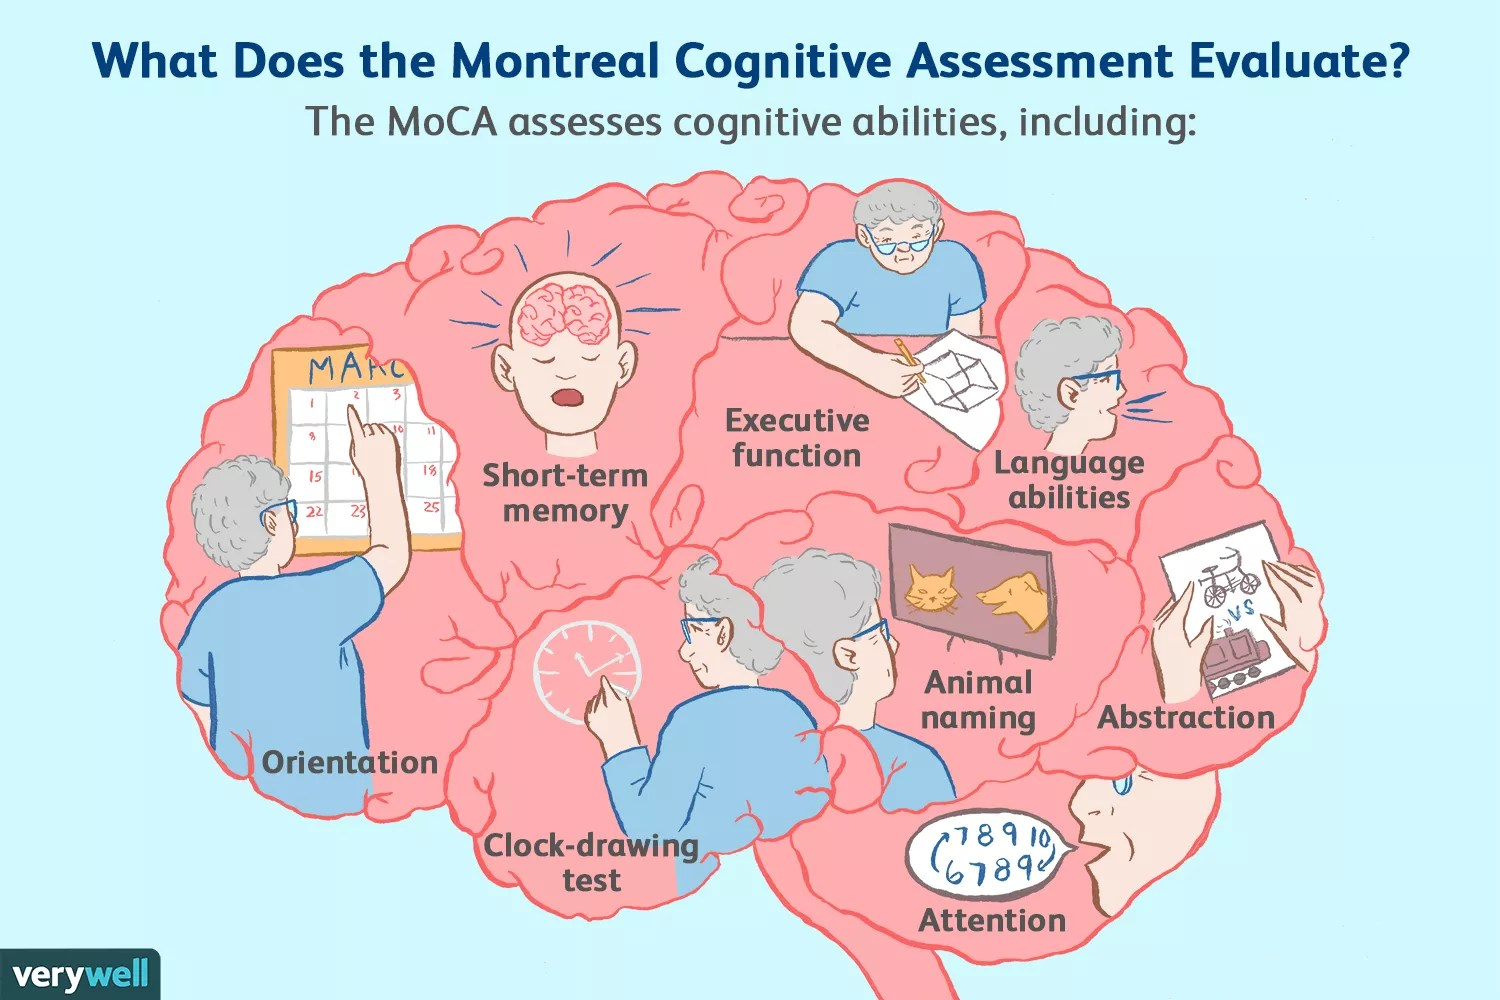 montreal cognitive assessment (MoCA) evaluation